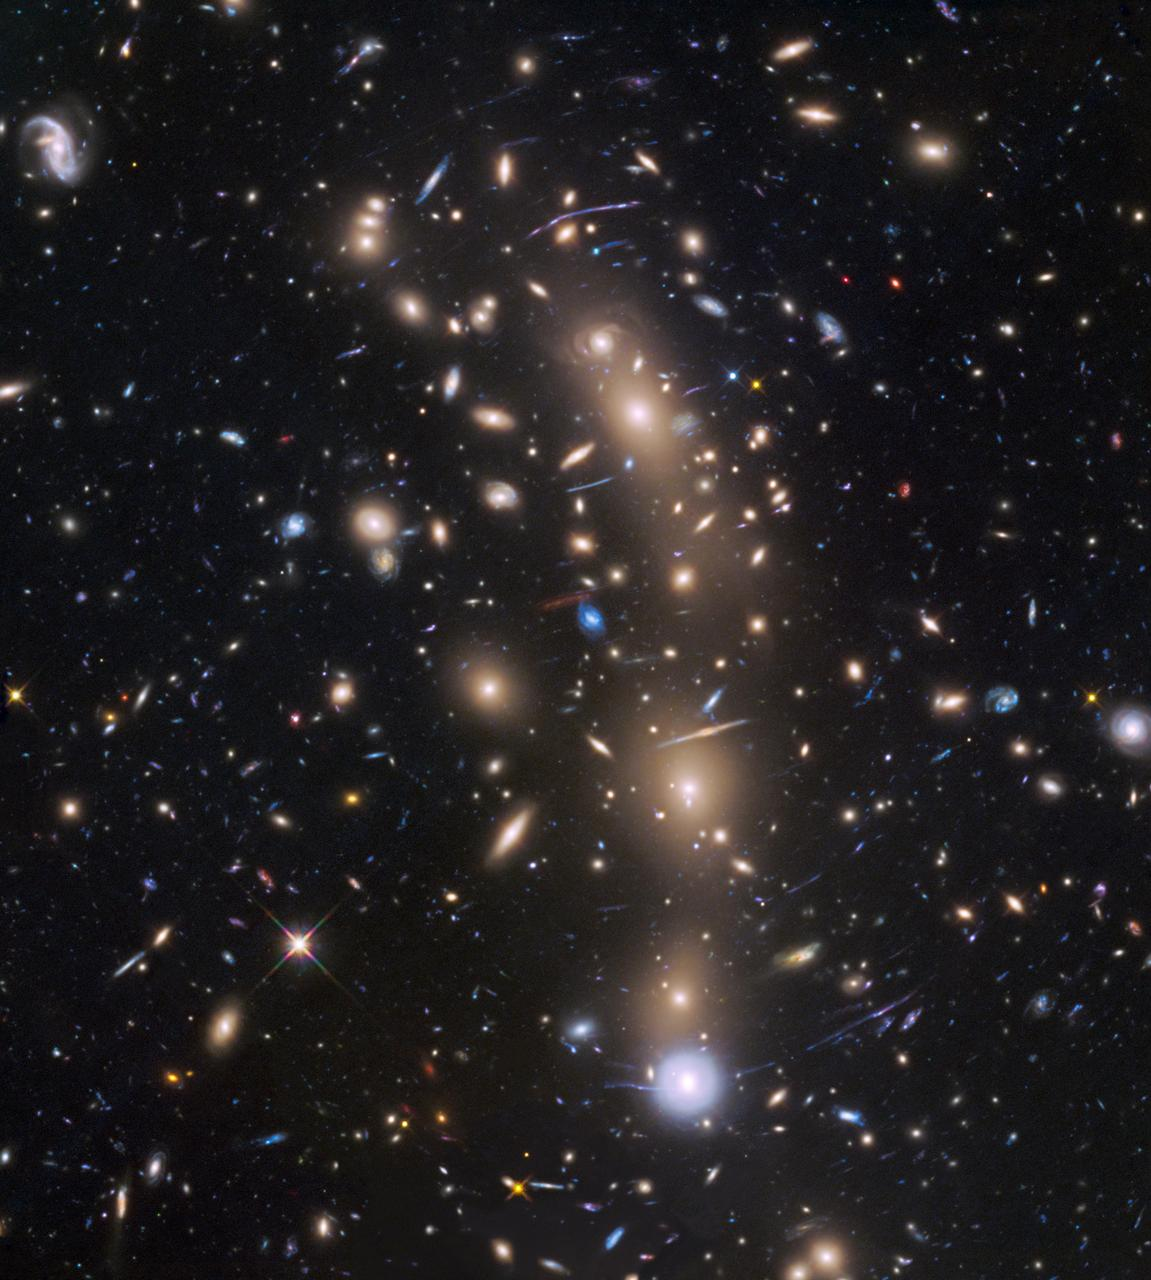 This is view from ESA Hubble Space Telescope of a very massive cluster of galaxies, MACS J0416.1-2403, located roughly 4 billion light-years away and weighing as much as a million billion suns.